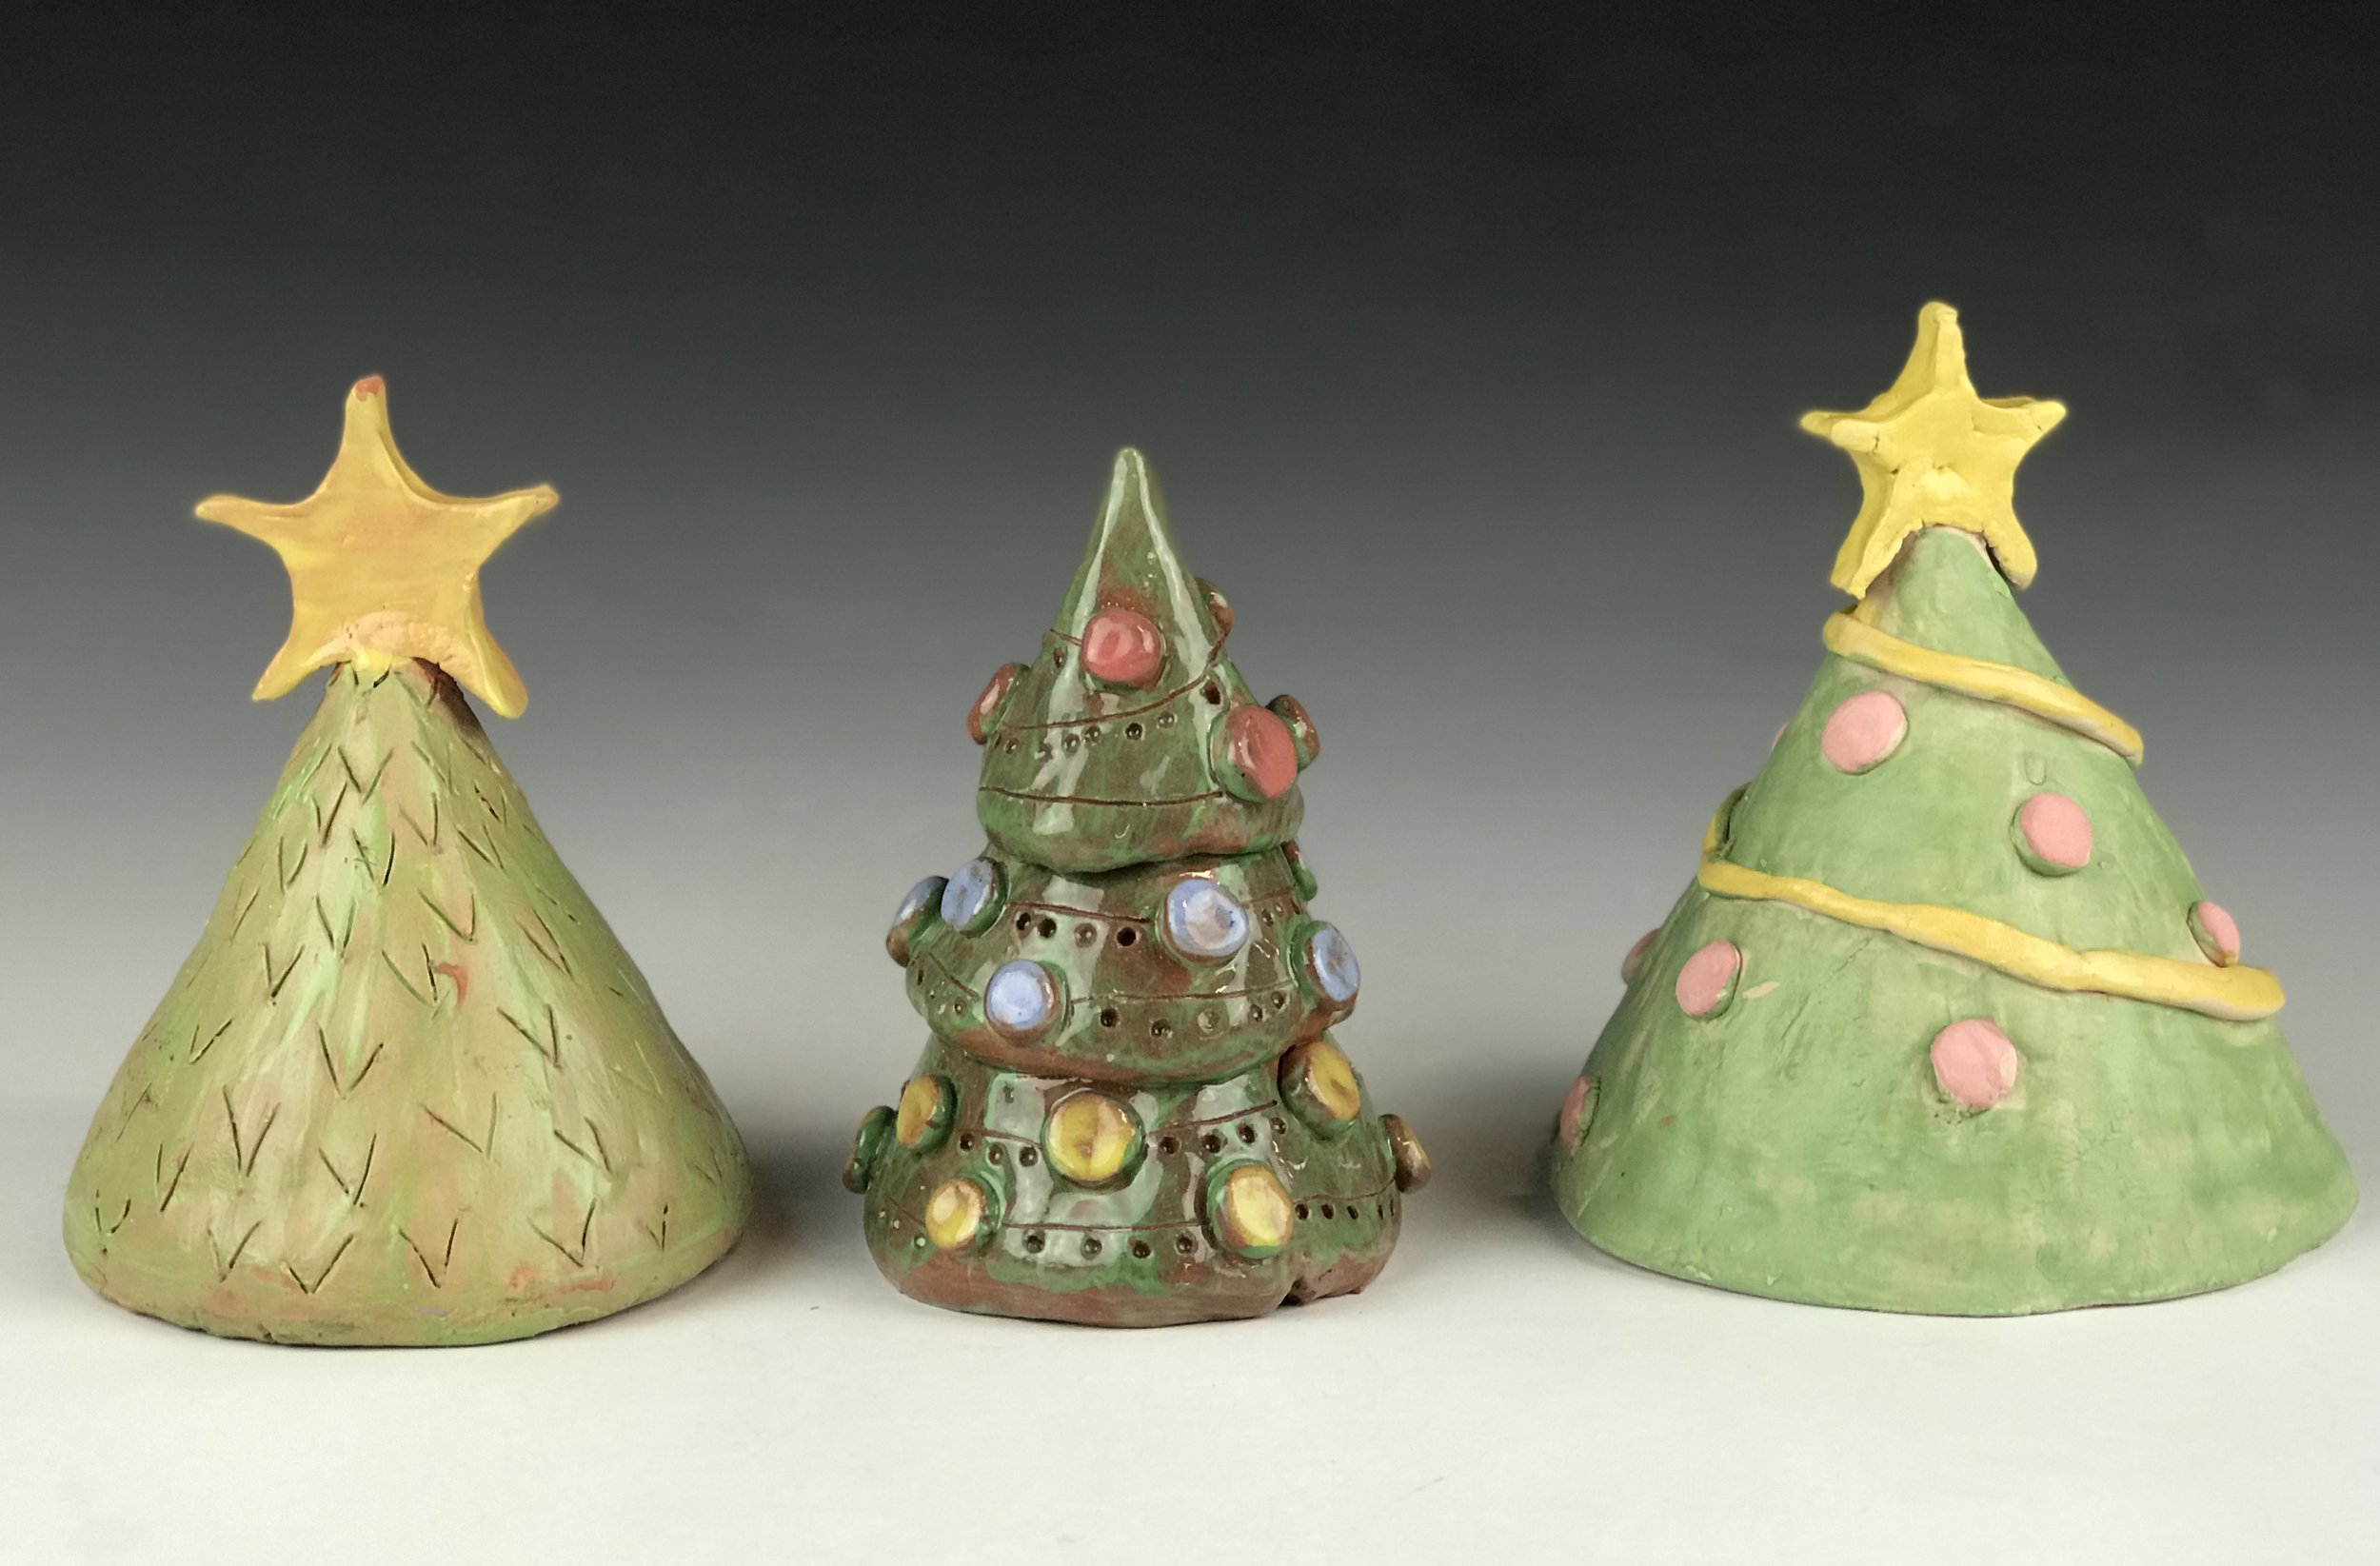 Clay Holiday Trees - Make a holiday tree from clay to decorate your home. The decorative options are endless!**kids ages 8 and under MUST be accompanied by an adult**